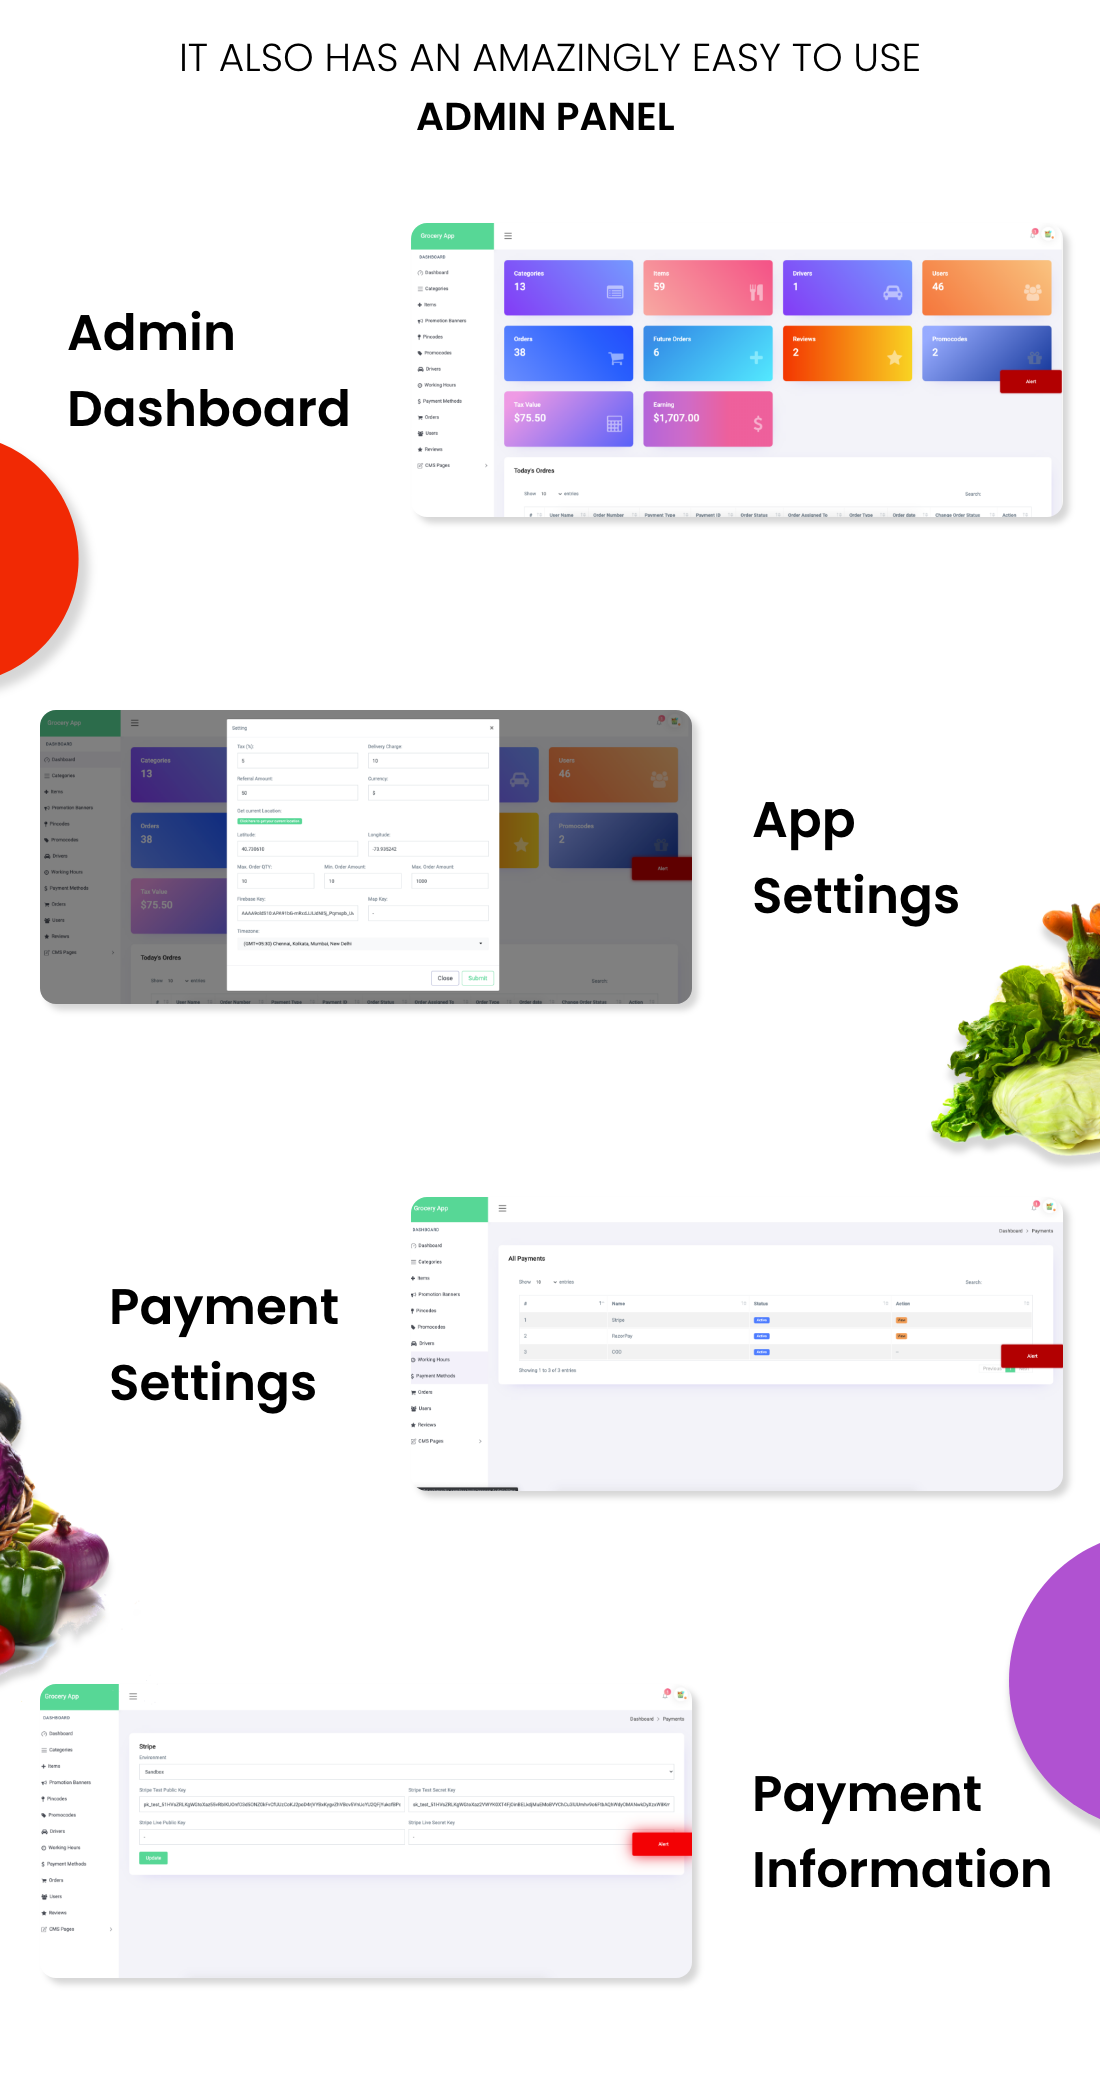 Single Grocery, Food, Pharmacy Store Android User & Delivery Boy Apps With Backend Admin Panel - 11